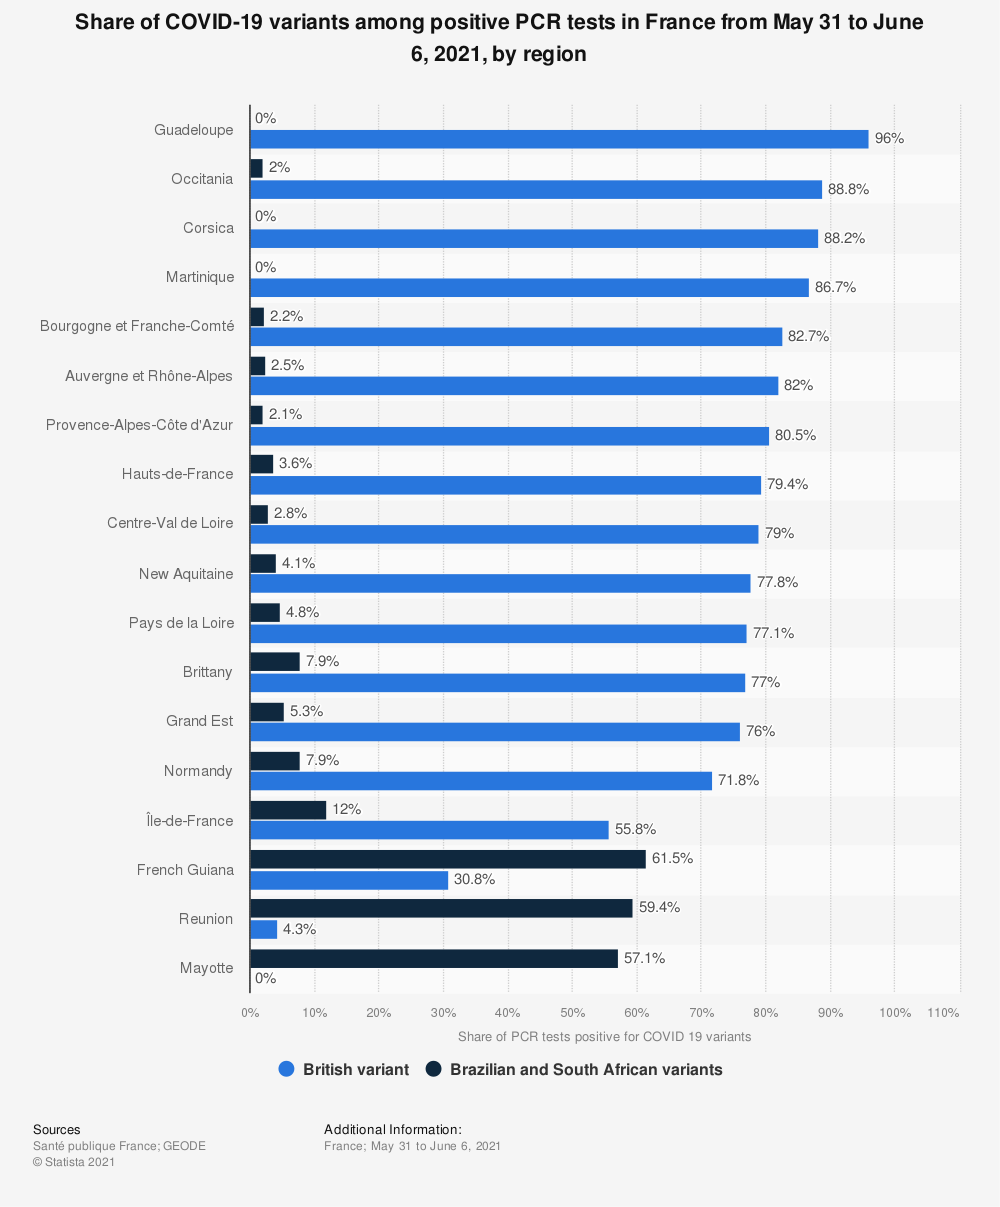 Statistic: Share of COVID-19 variants among positive PCR tests in France from May 31 to June 6, 2021, by region | Statista